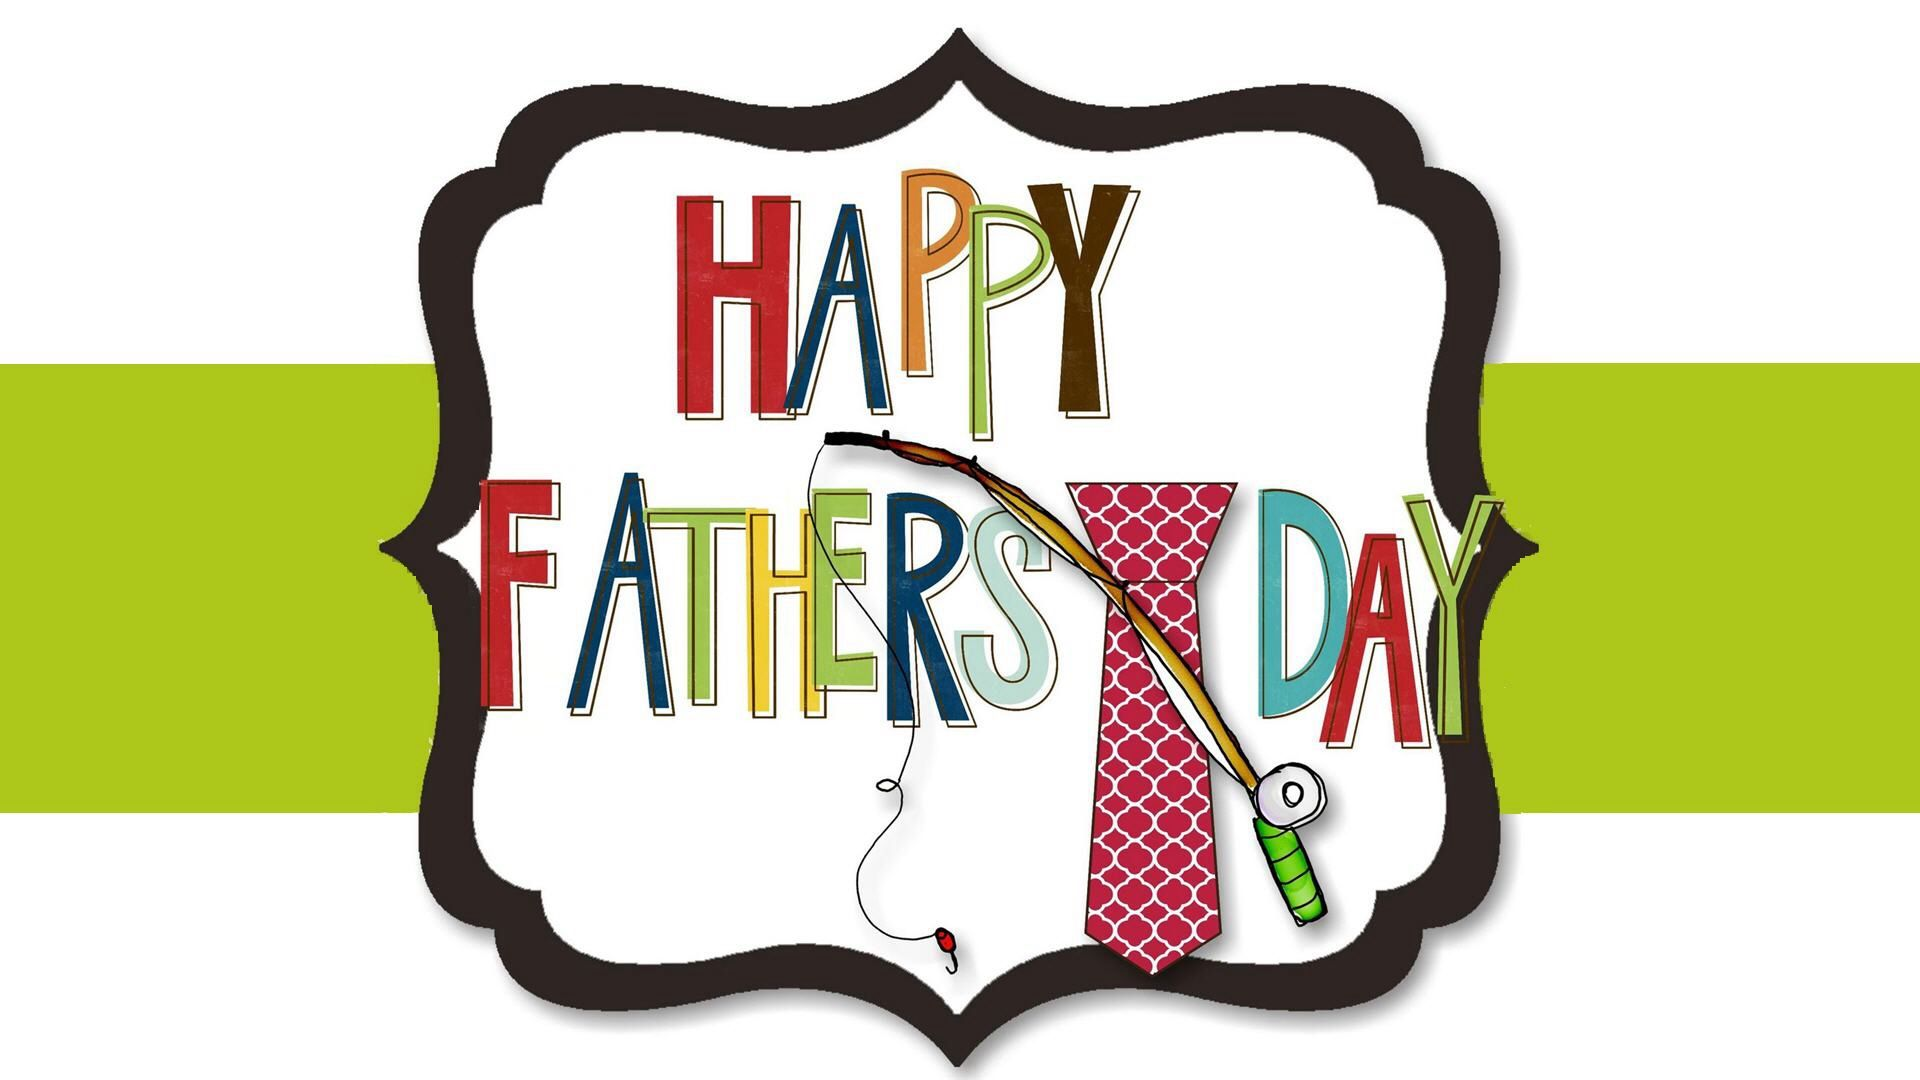 Mens Father S Day Ministry Event Themes Happy Father Day Quotes Happy Fathers Day Wallpaper Fathers Day Quotes